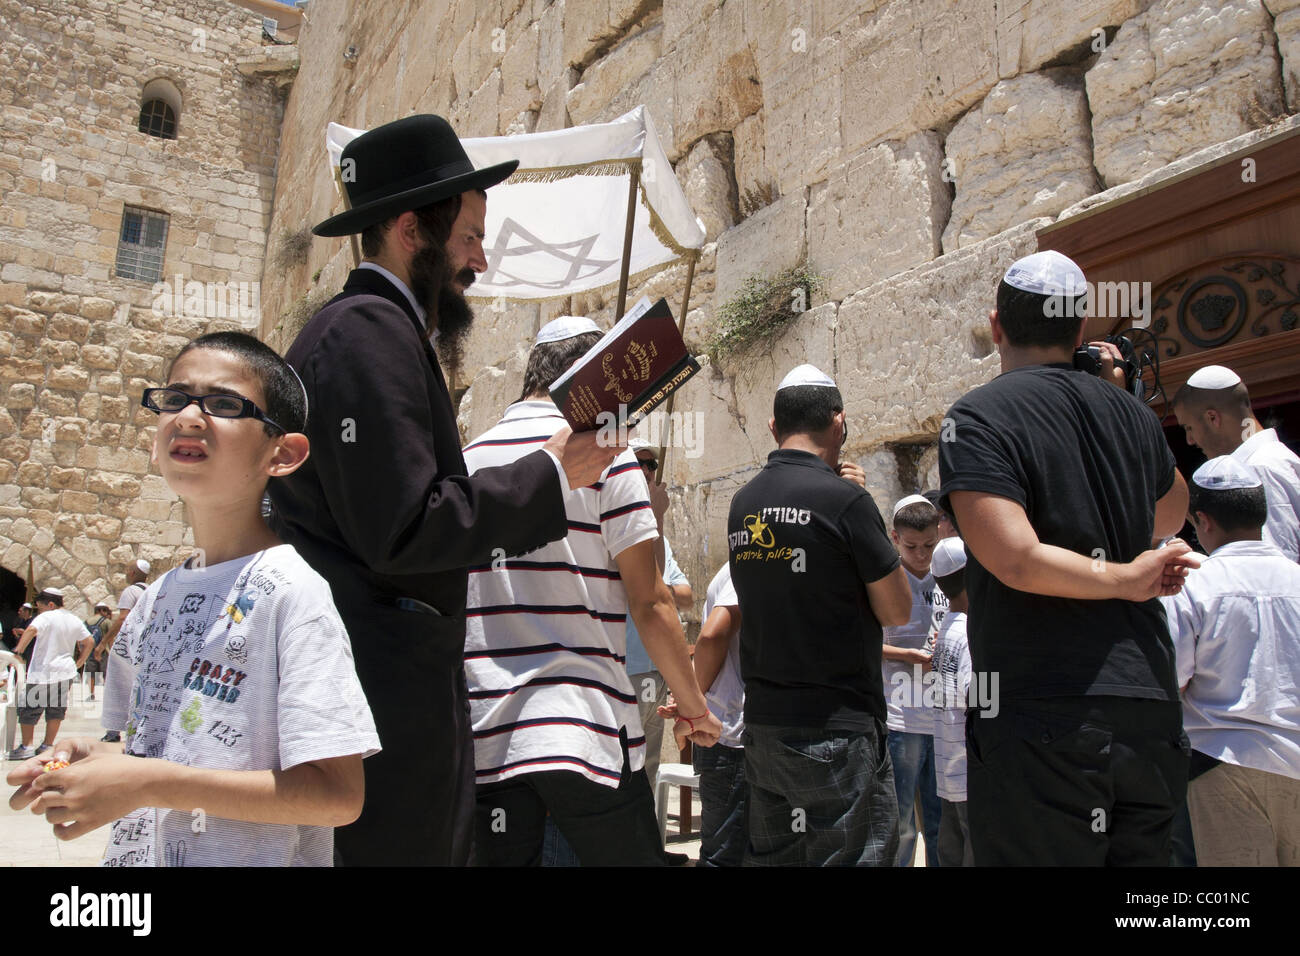 CELEBRATION OF A BAR MITSVA, JEWISH CEREMONY IN FRONT OF THE WAILING WALL (OR WESTERN WALL), OLD CITY OF JERUSALEM, - Stock Image